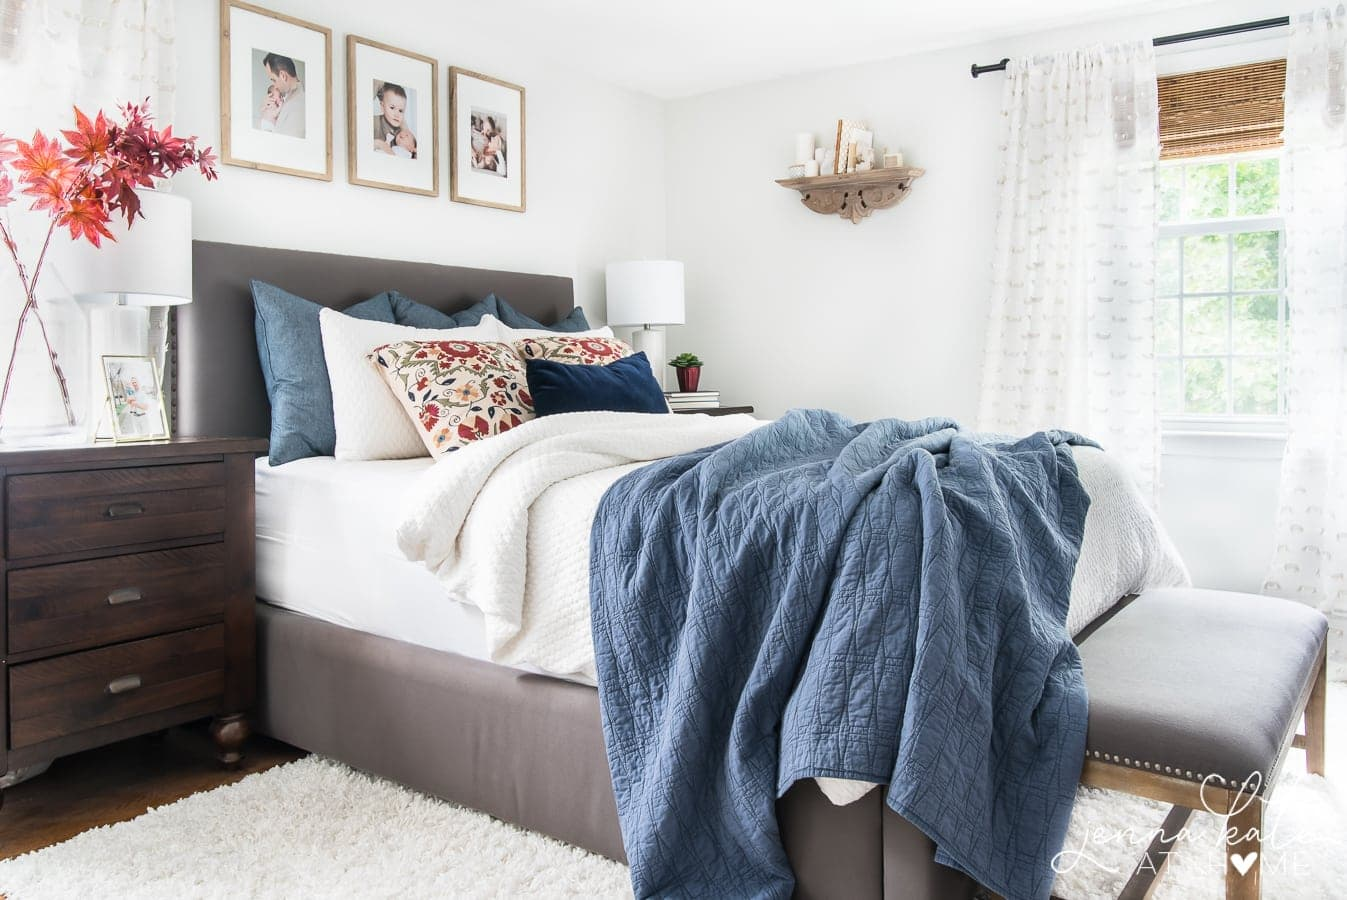 Create a cozy bedroom this fall with these simple decorating ideas